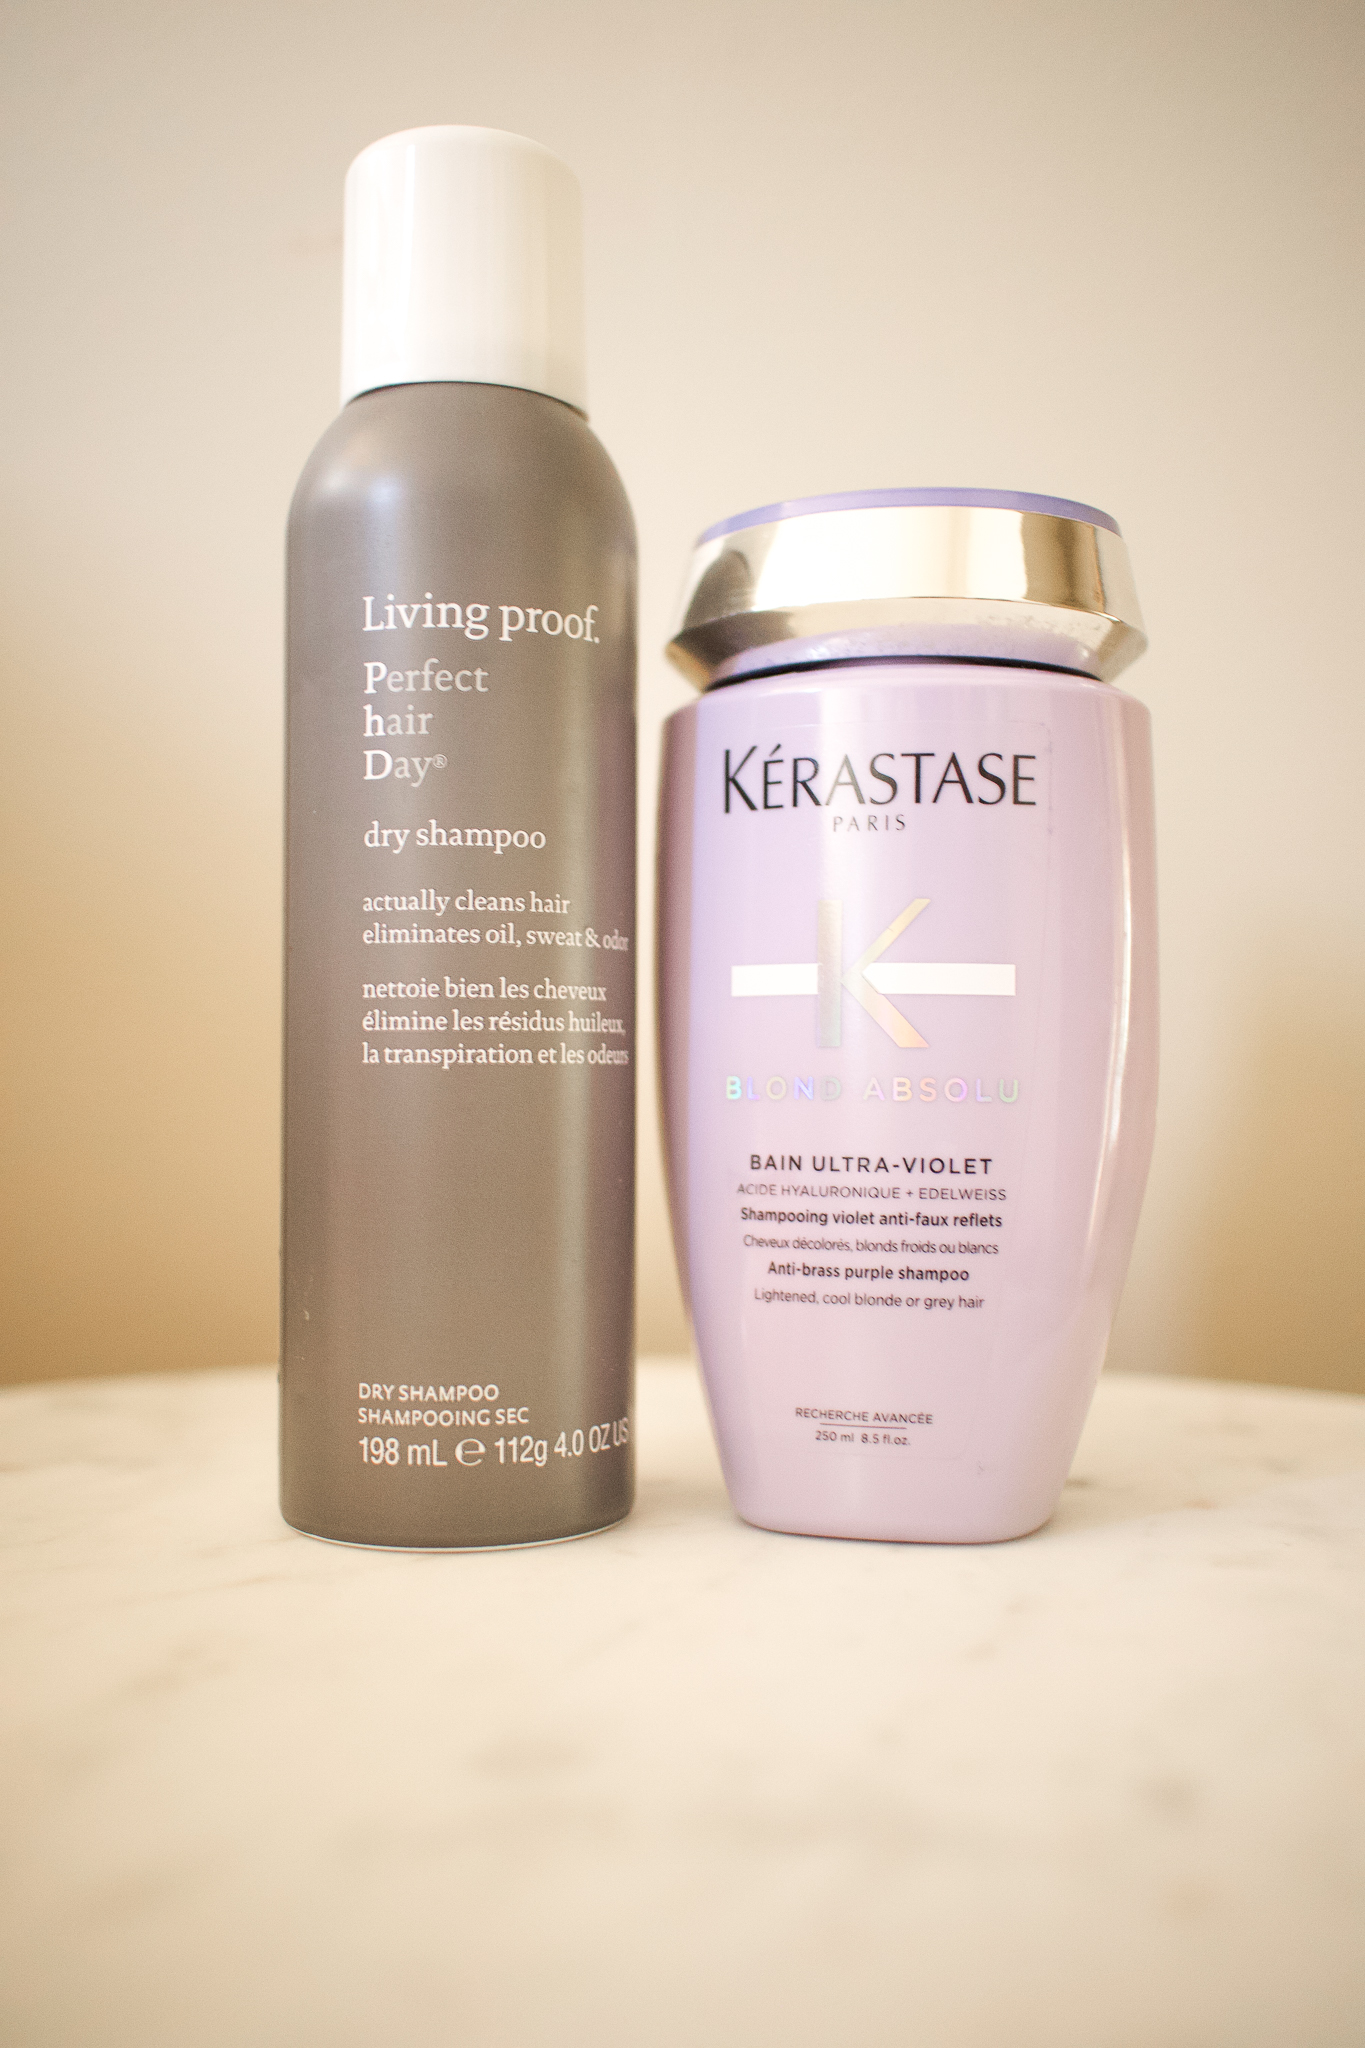 Empties by popular Seattle beauty blog, Whit Wanders: image of Kerastase satin ultra violet shampoo and Living Proof dry shampoo.